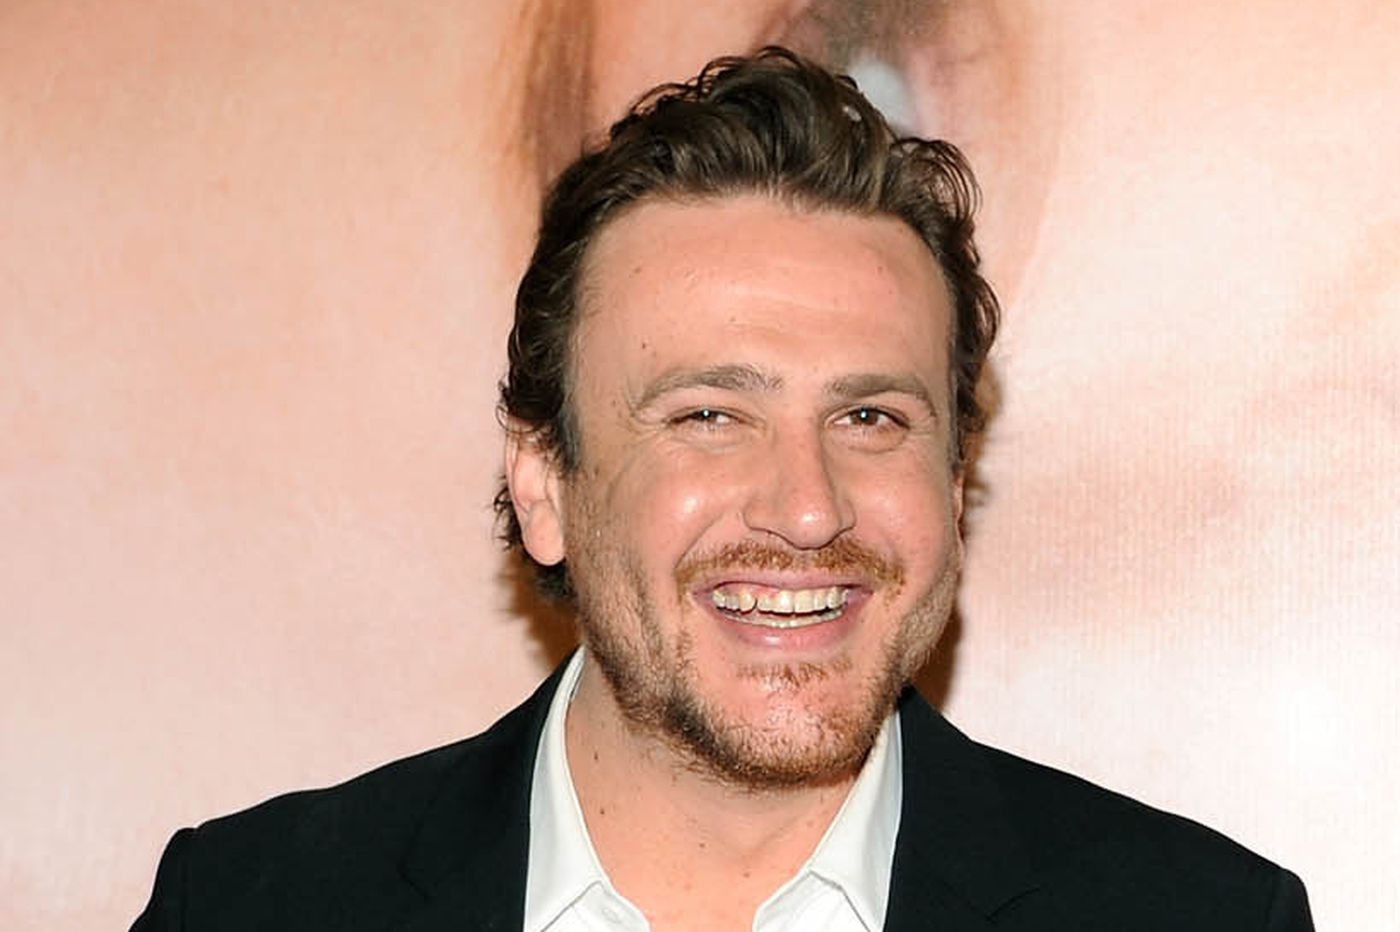 Why is actor Jason Segel in Philly?